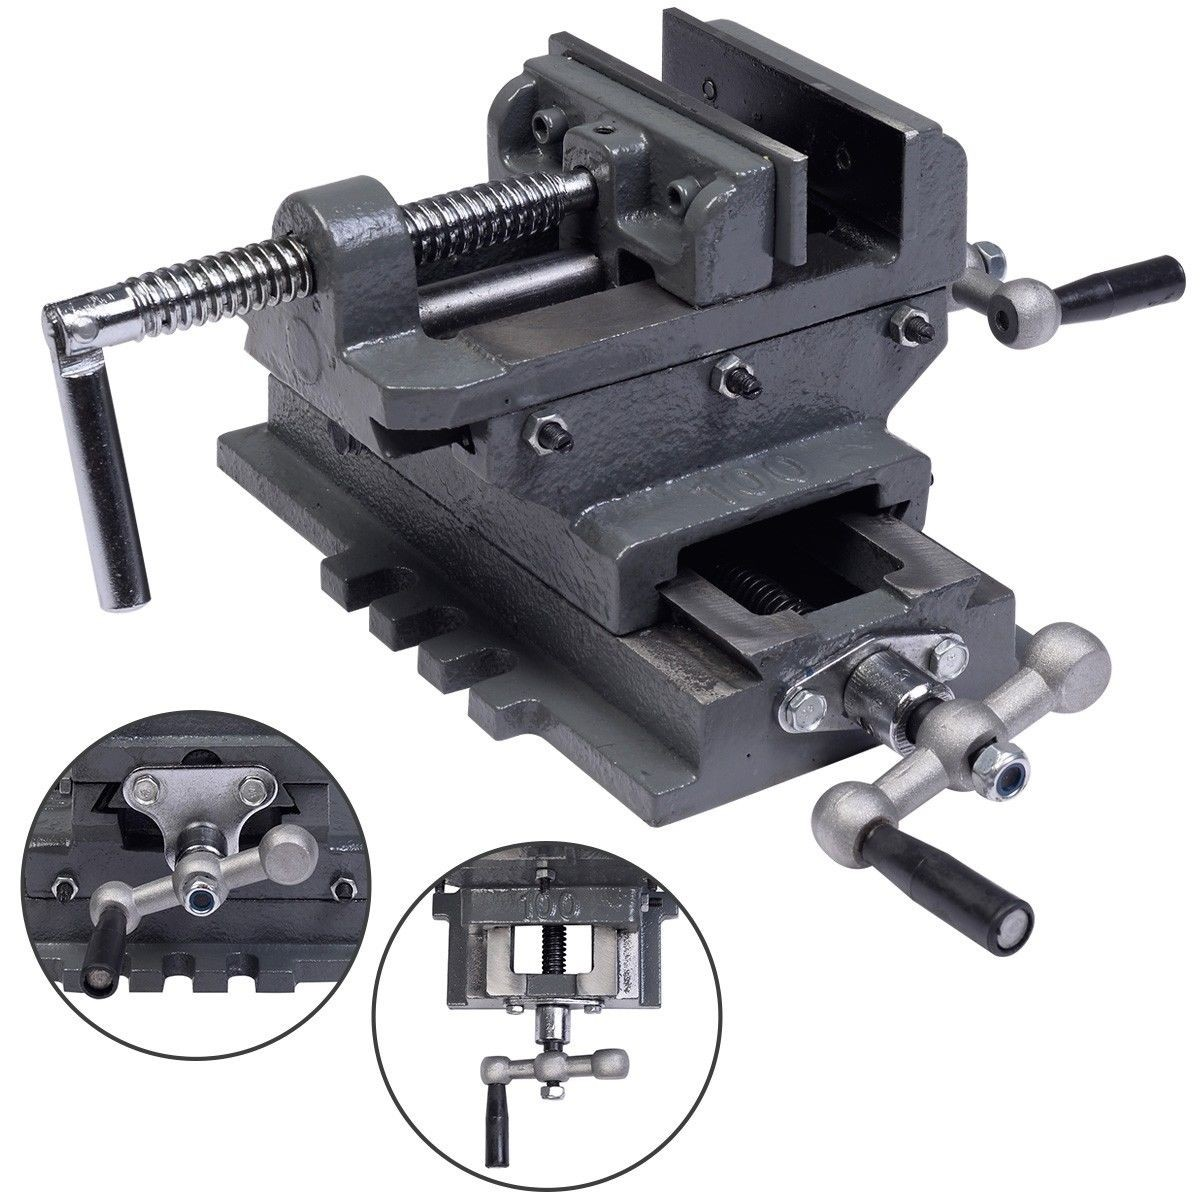 turn your drill press into a milling machine